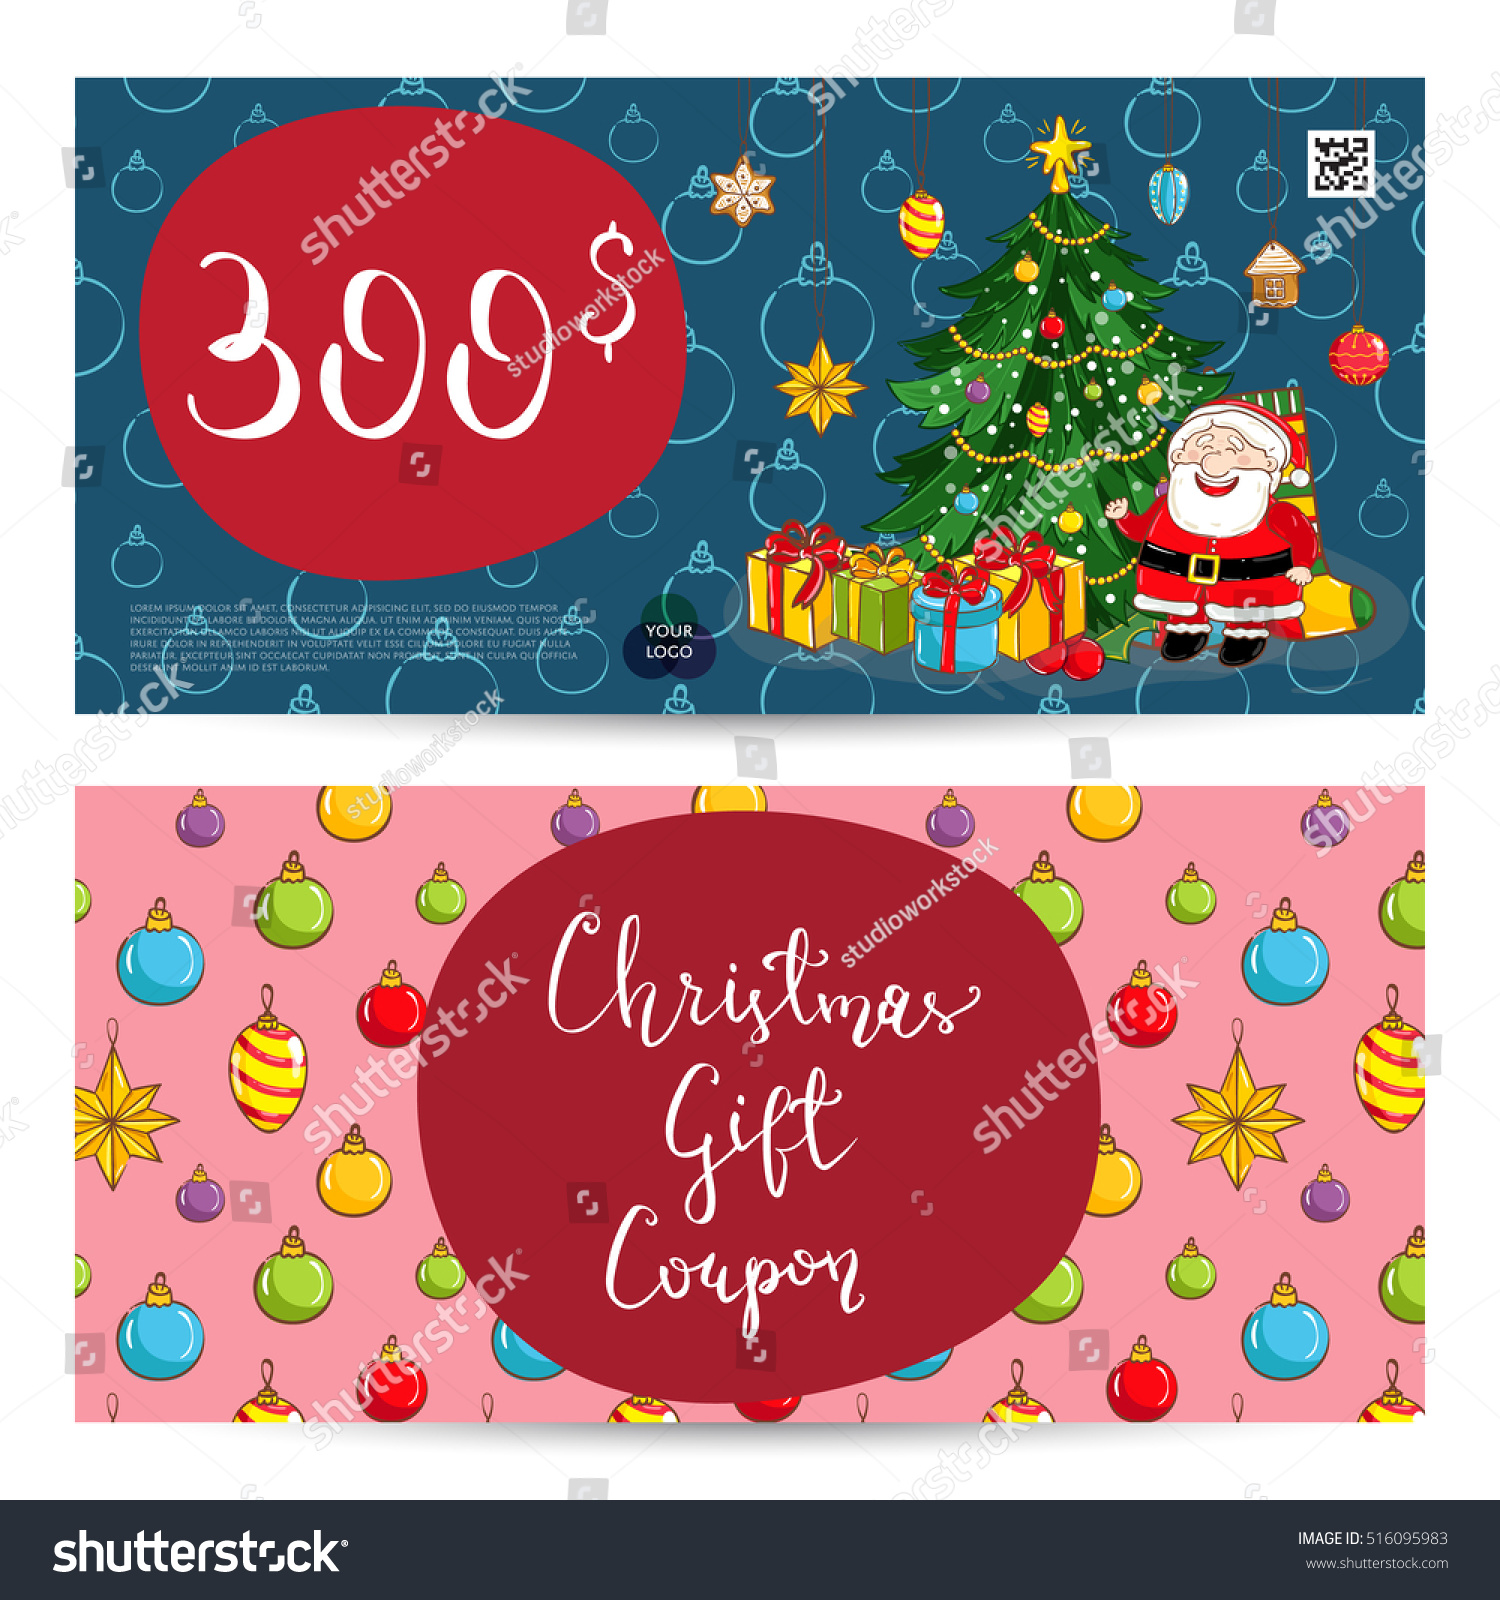 Christmas Gift Voucher Template Gift Coupon Stock Vector (Royalty ...